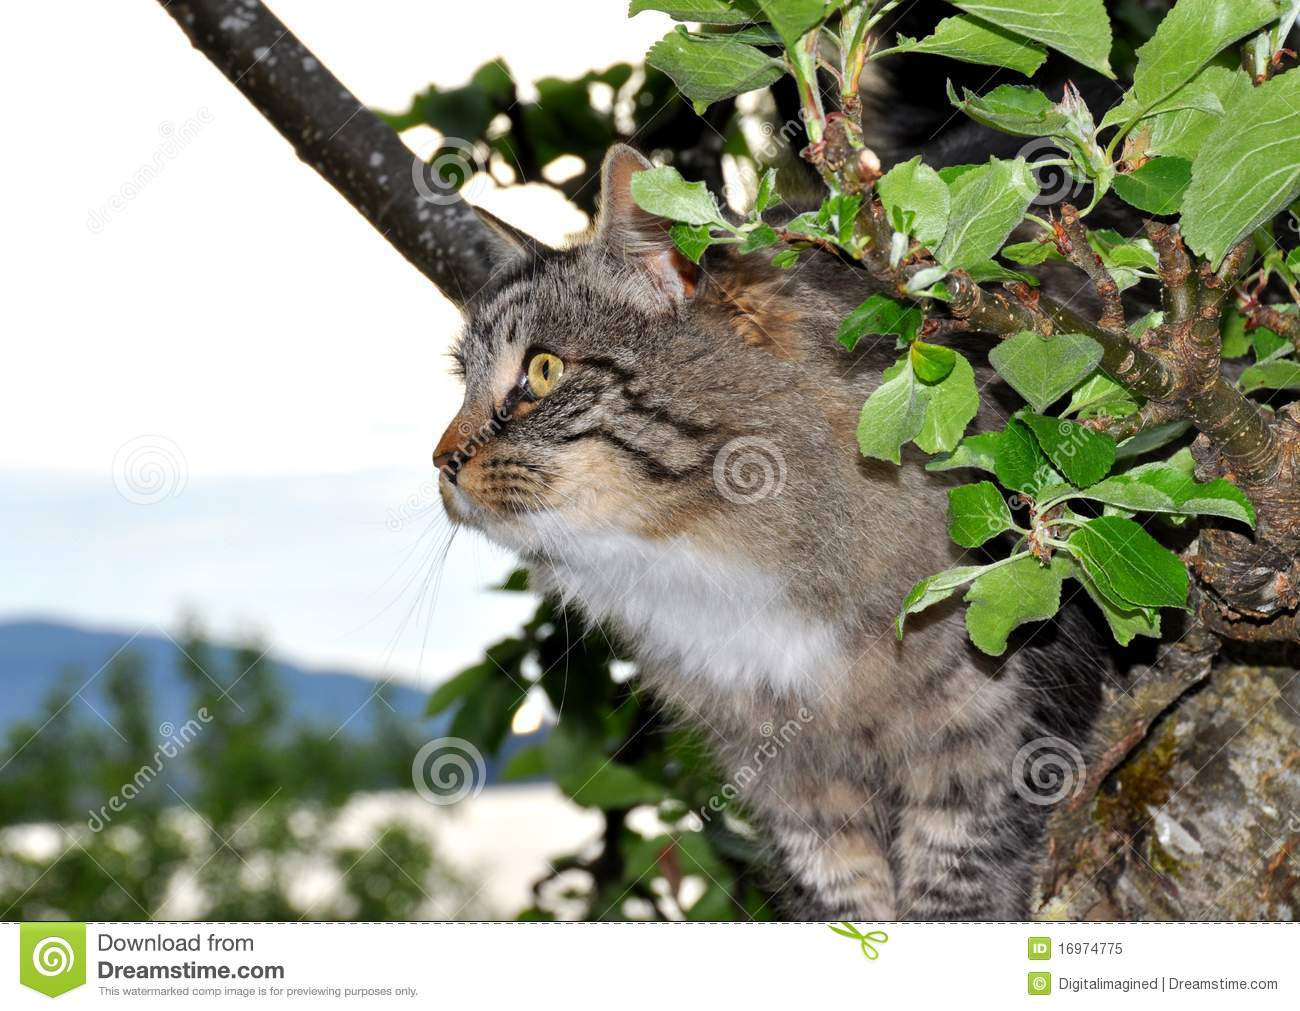 cat in apple tree stock image image of branch climbing 16974775. Black Bedroom Furniture Sets. Home Design Ideas